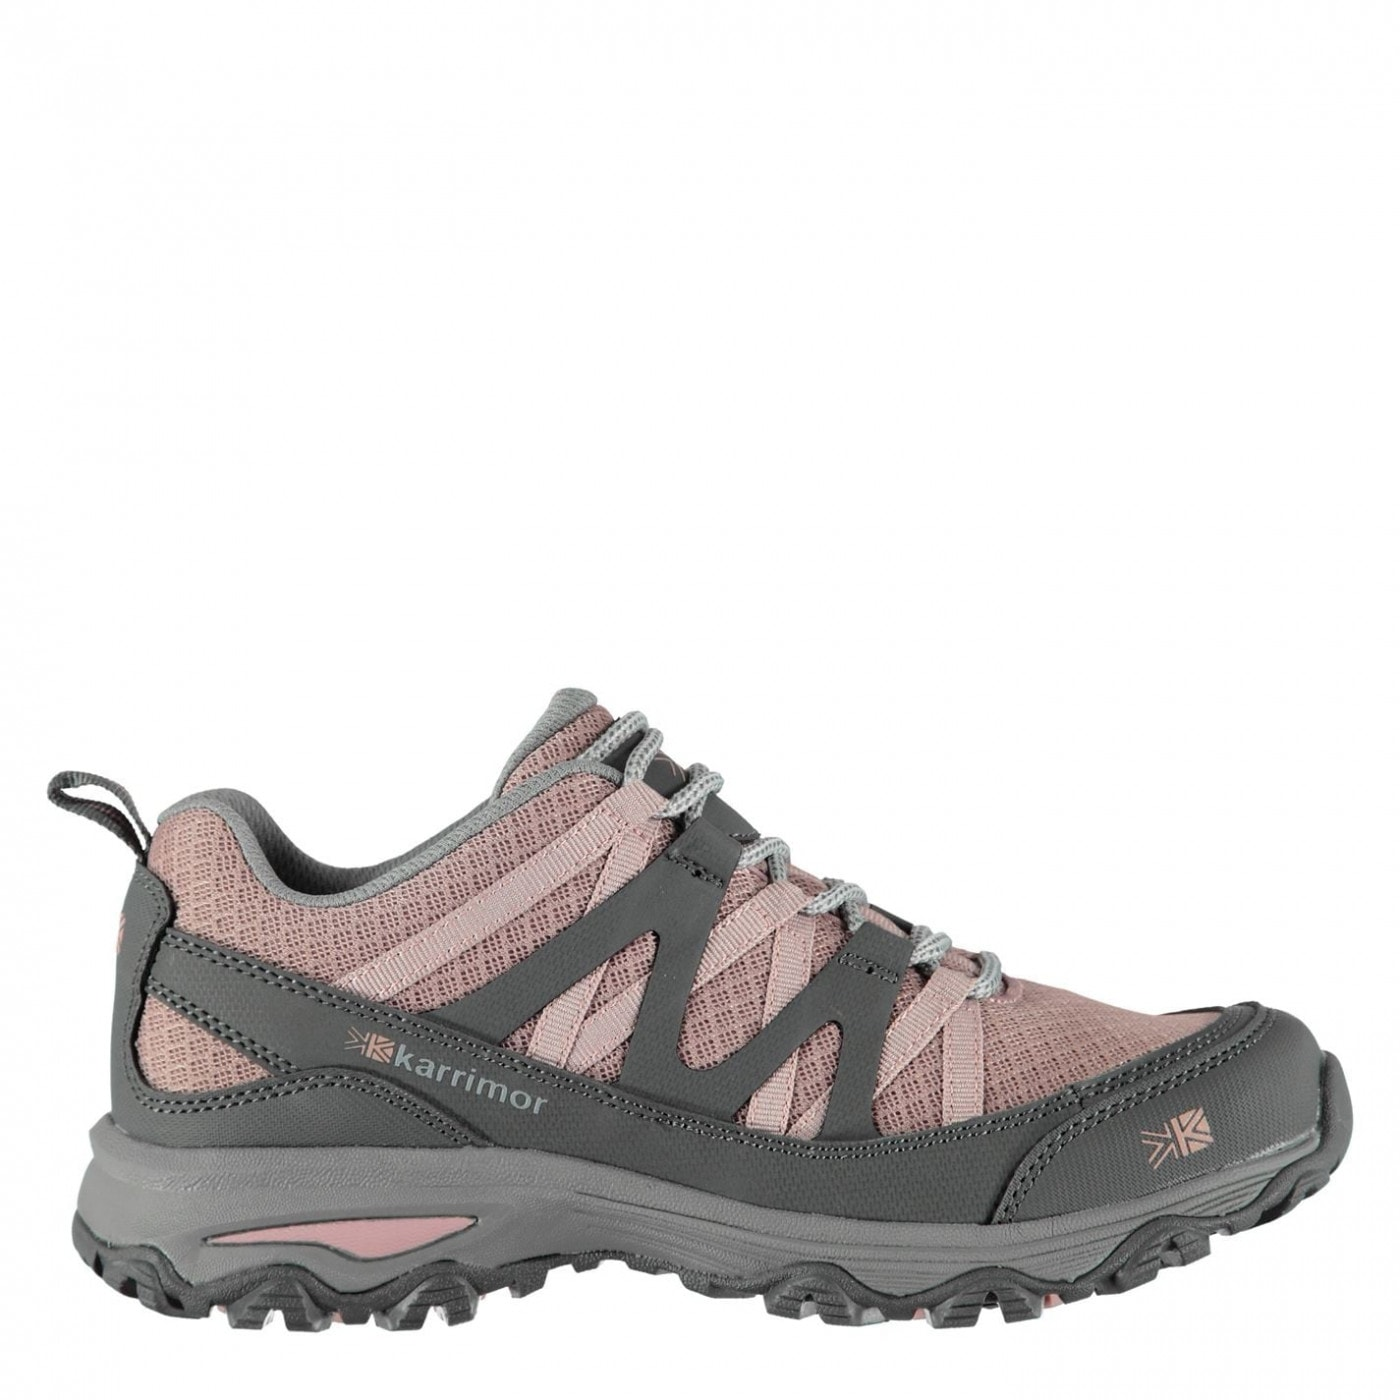 Karrimor Surge Walking Shoes Ladies